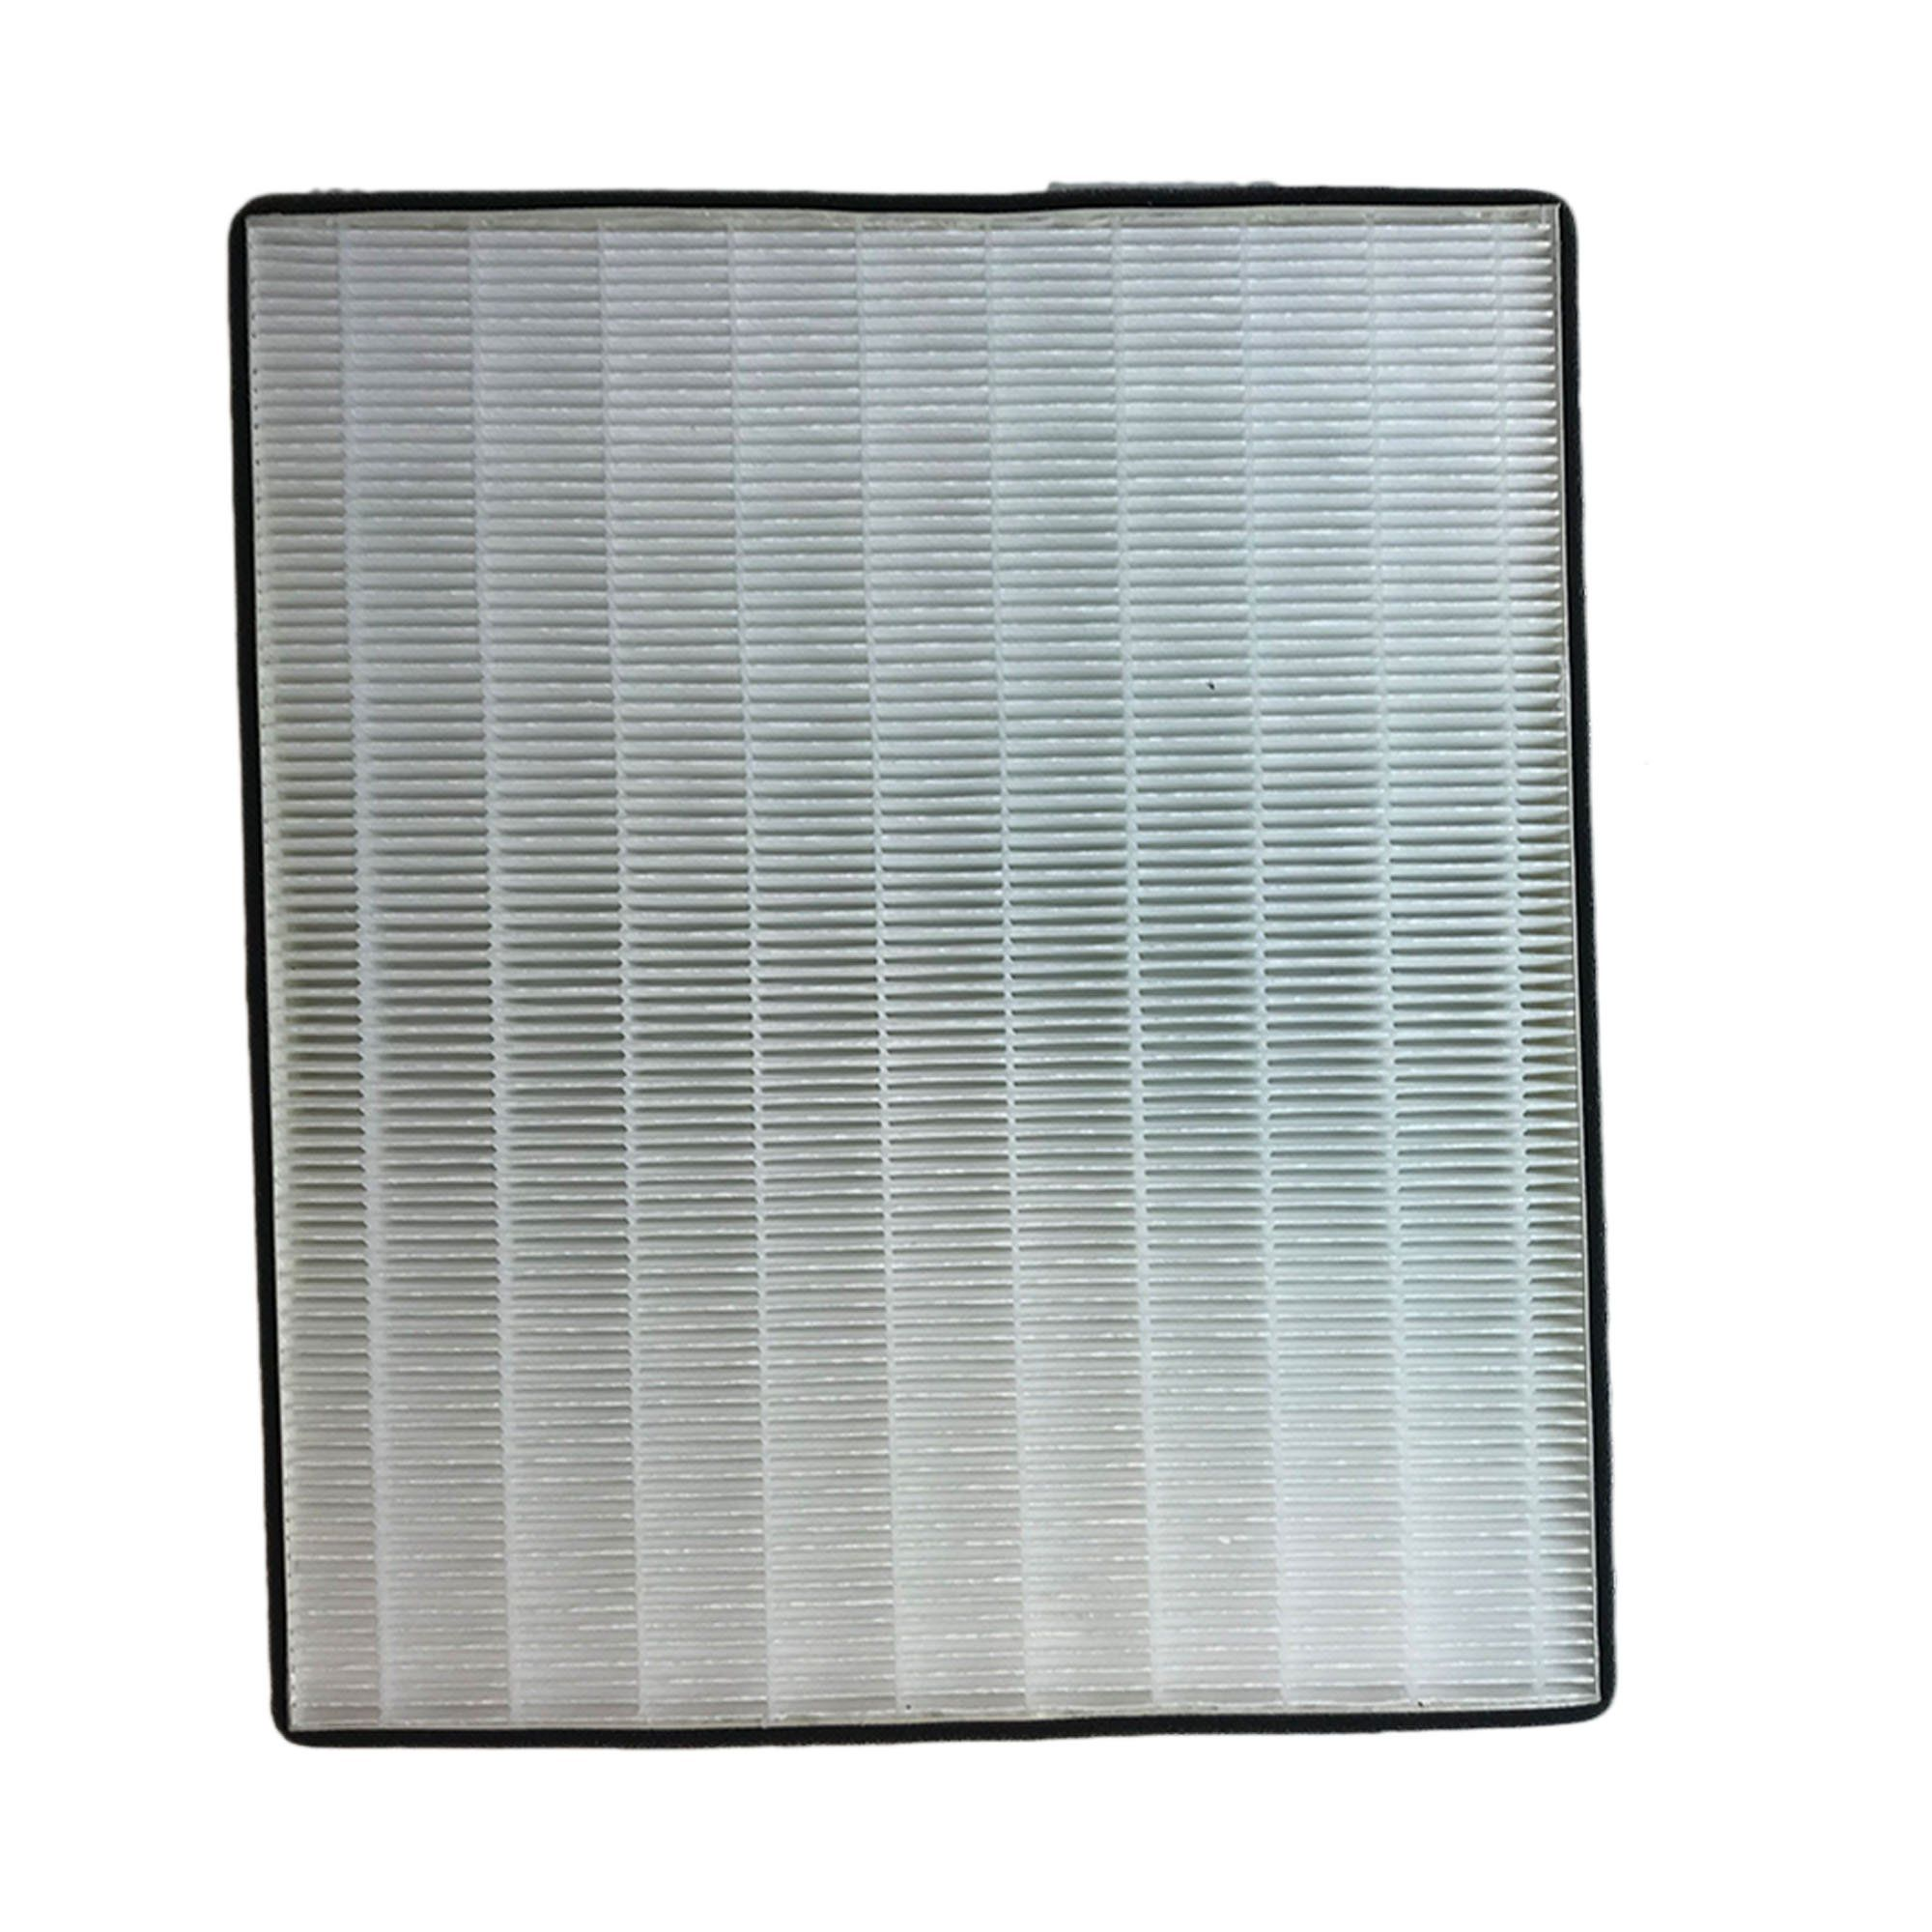 Replacement HEPA Style Filter, Fits Vornado Air Purifiers